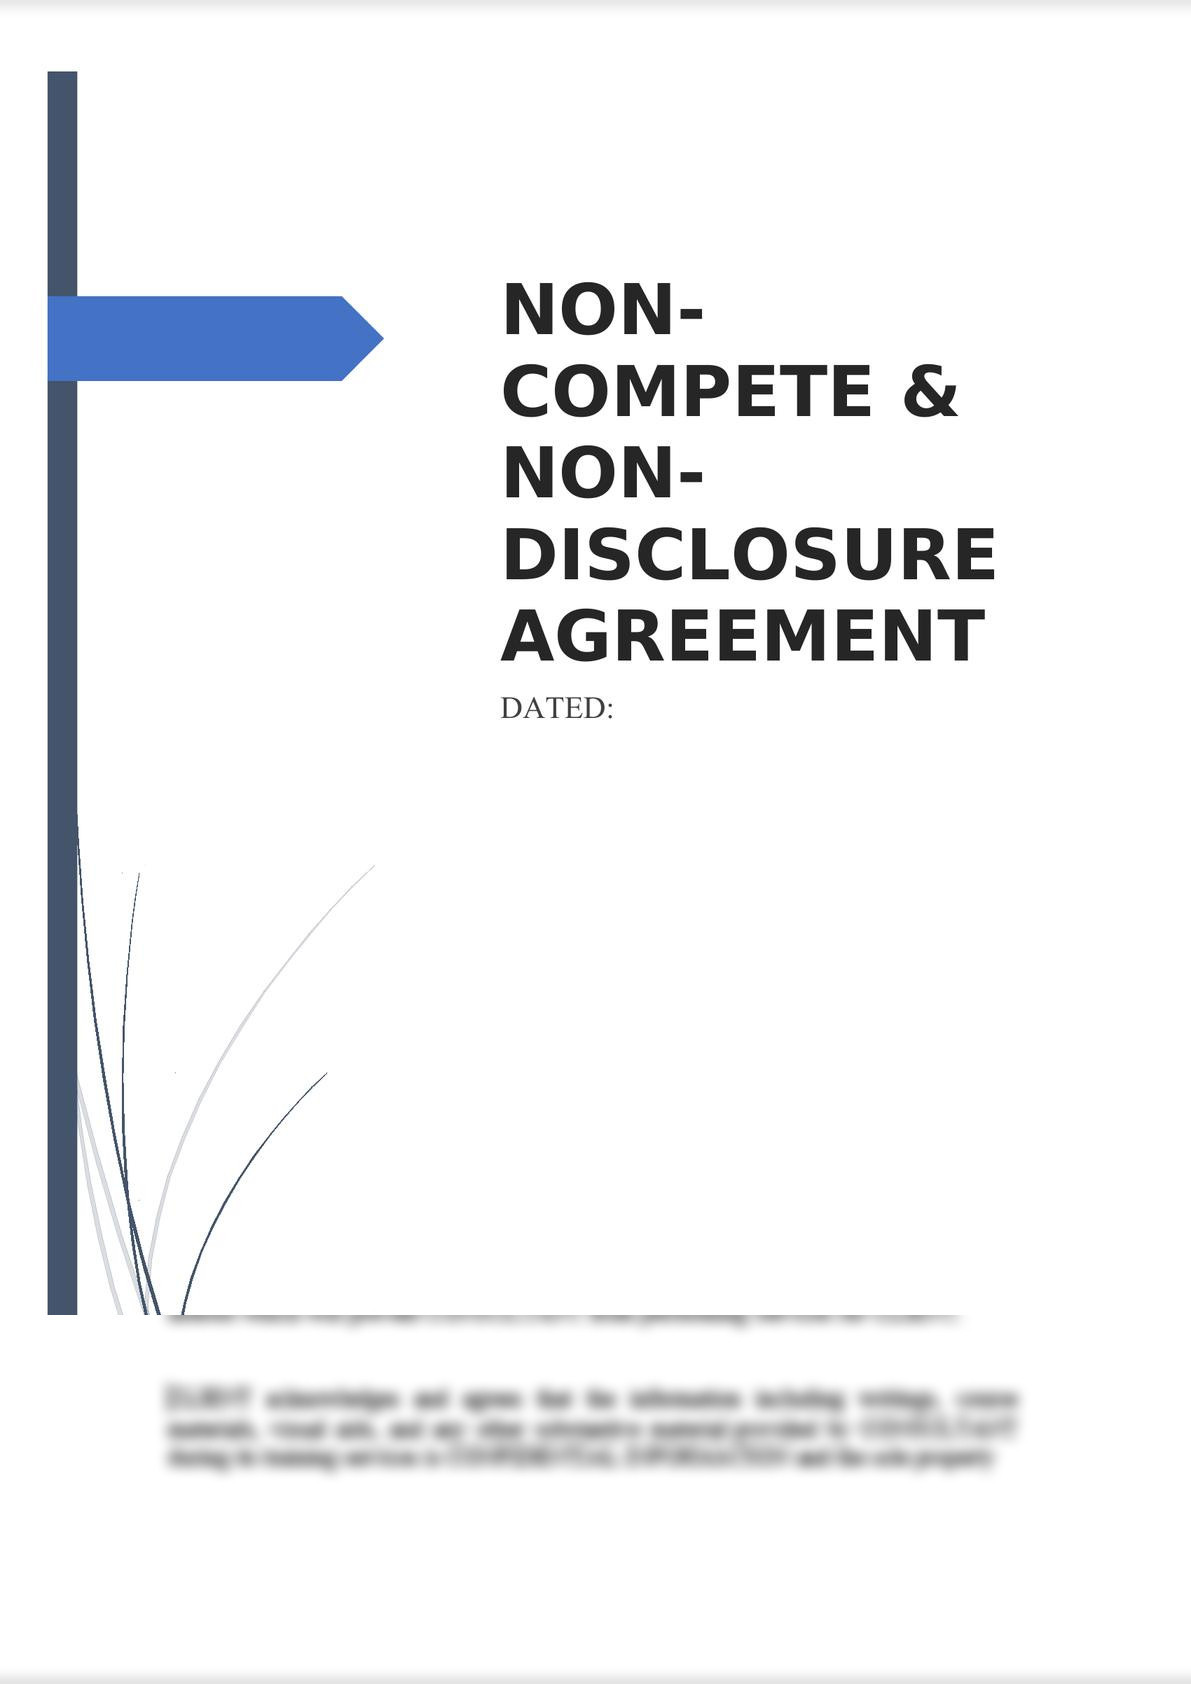 Non-Compete & Non-Disclosure Agreement-0